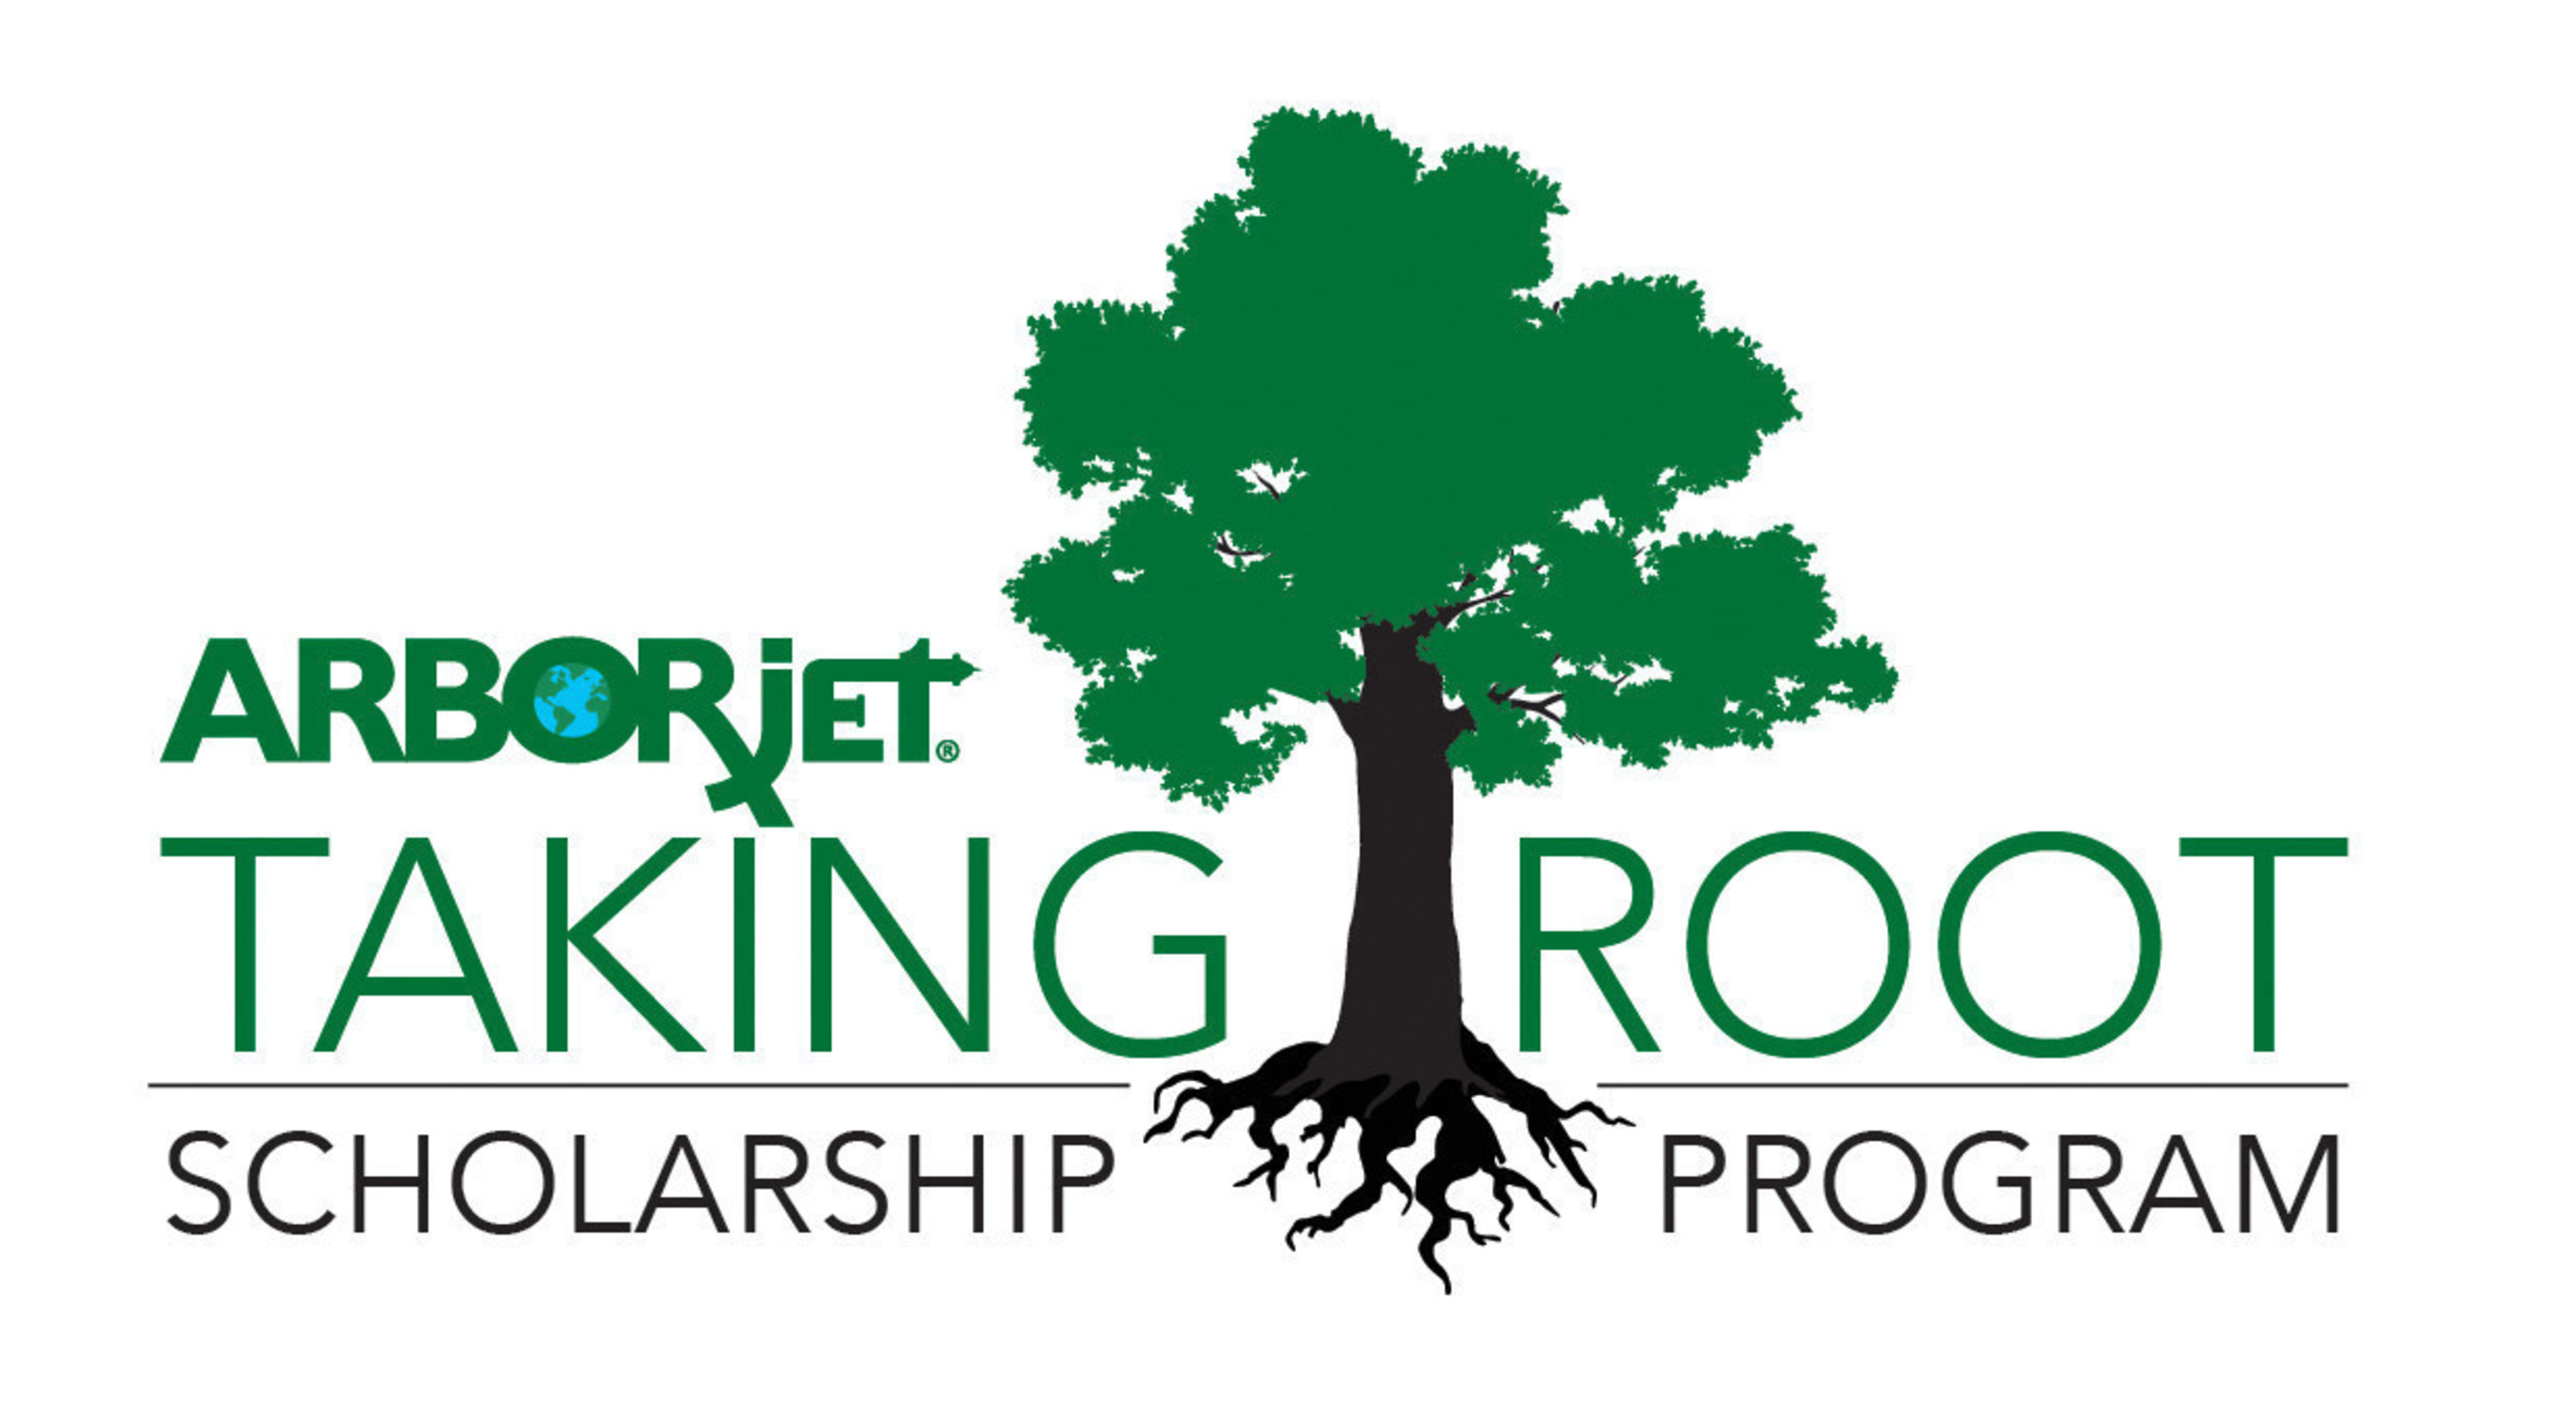 "Arborjet, a leader in the care of America's urban and natural forests, is now accepting applications for its 2016 ""Taking Root"" Scholarship Program. Now in its third year, the scholarship program will award 10 graduating high school seniors each with a $1,000 scholarship to pursue full-time studies in Forestry, Plant Sciences, Horticulture, Entomology, Environmental Science or a related major at an accredited two-year or four-year college. Learn more and apply at http://sms.scholarshipamerica.org/arborjet/"